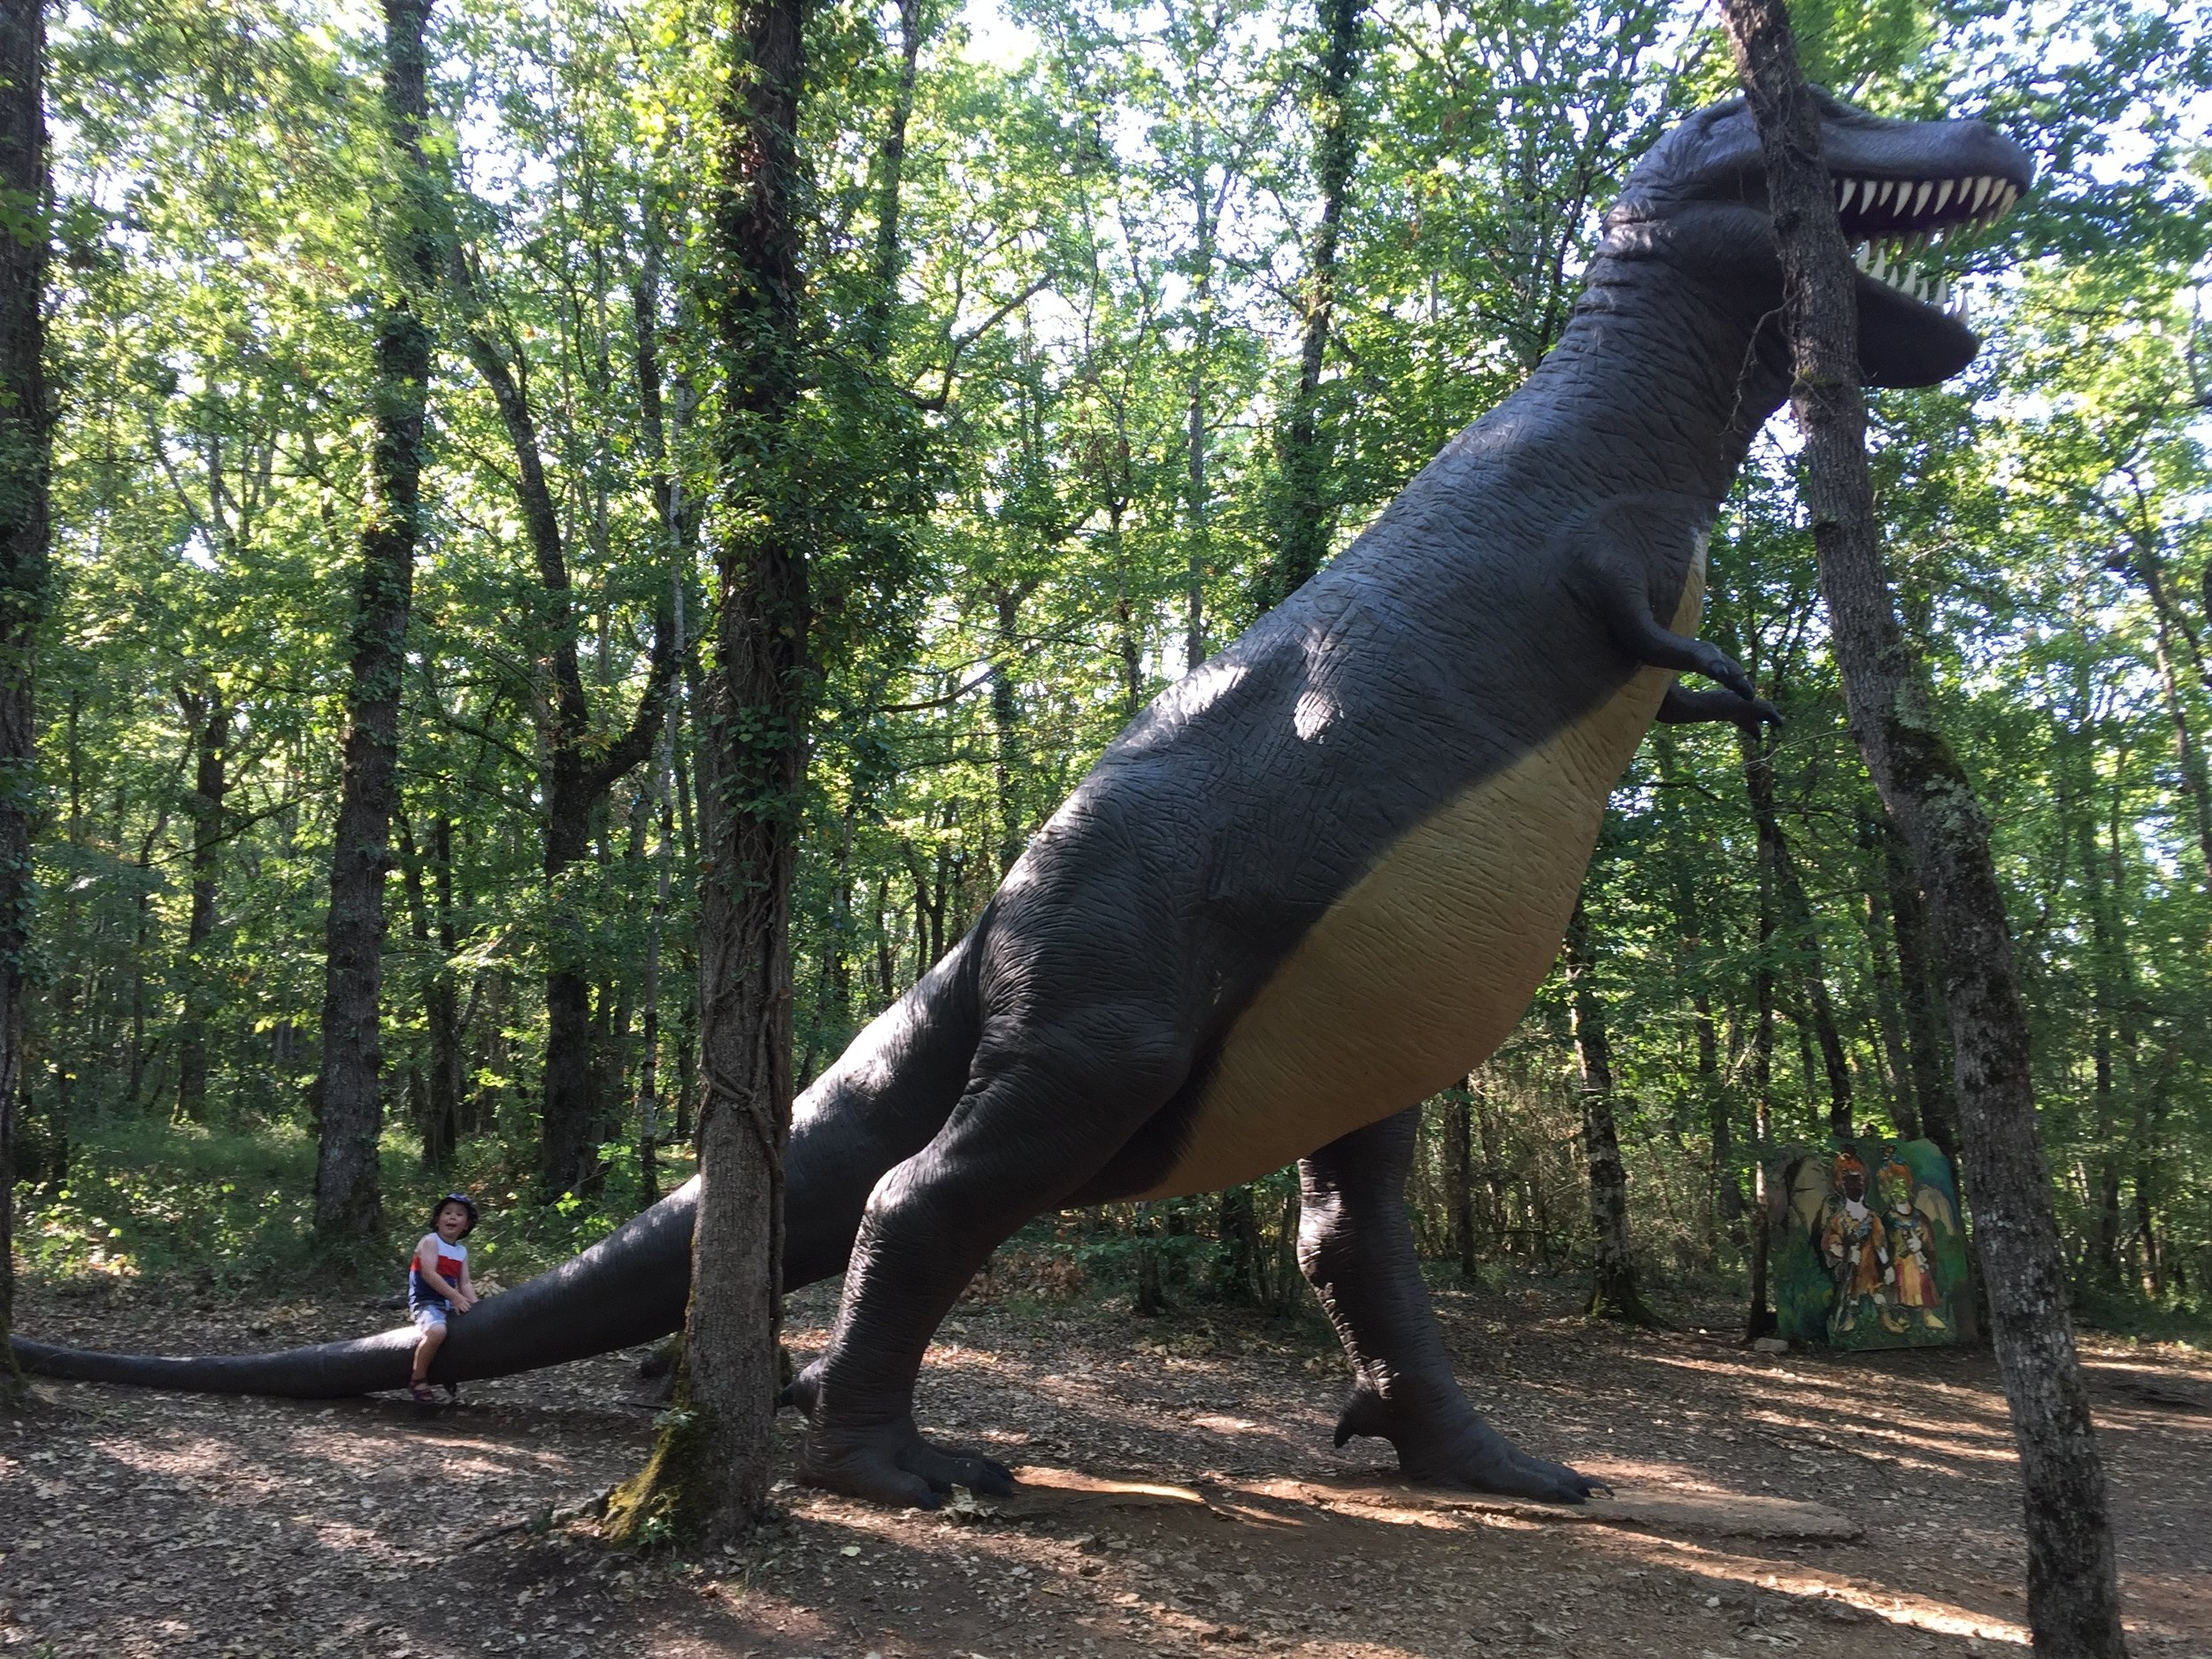 Real-size dinosaur with child on tail at The Conquil, Dordogne, France